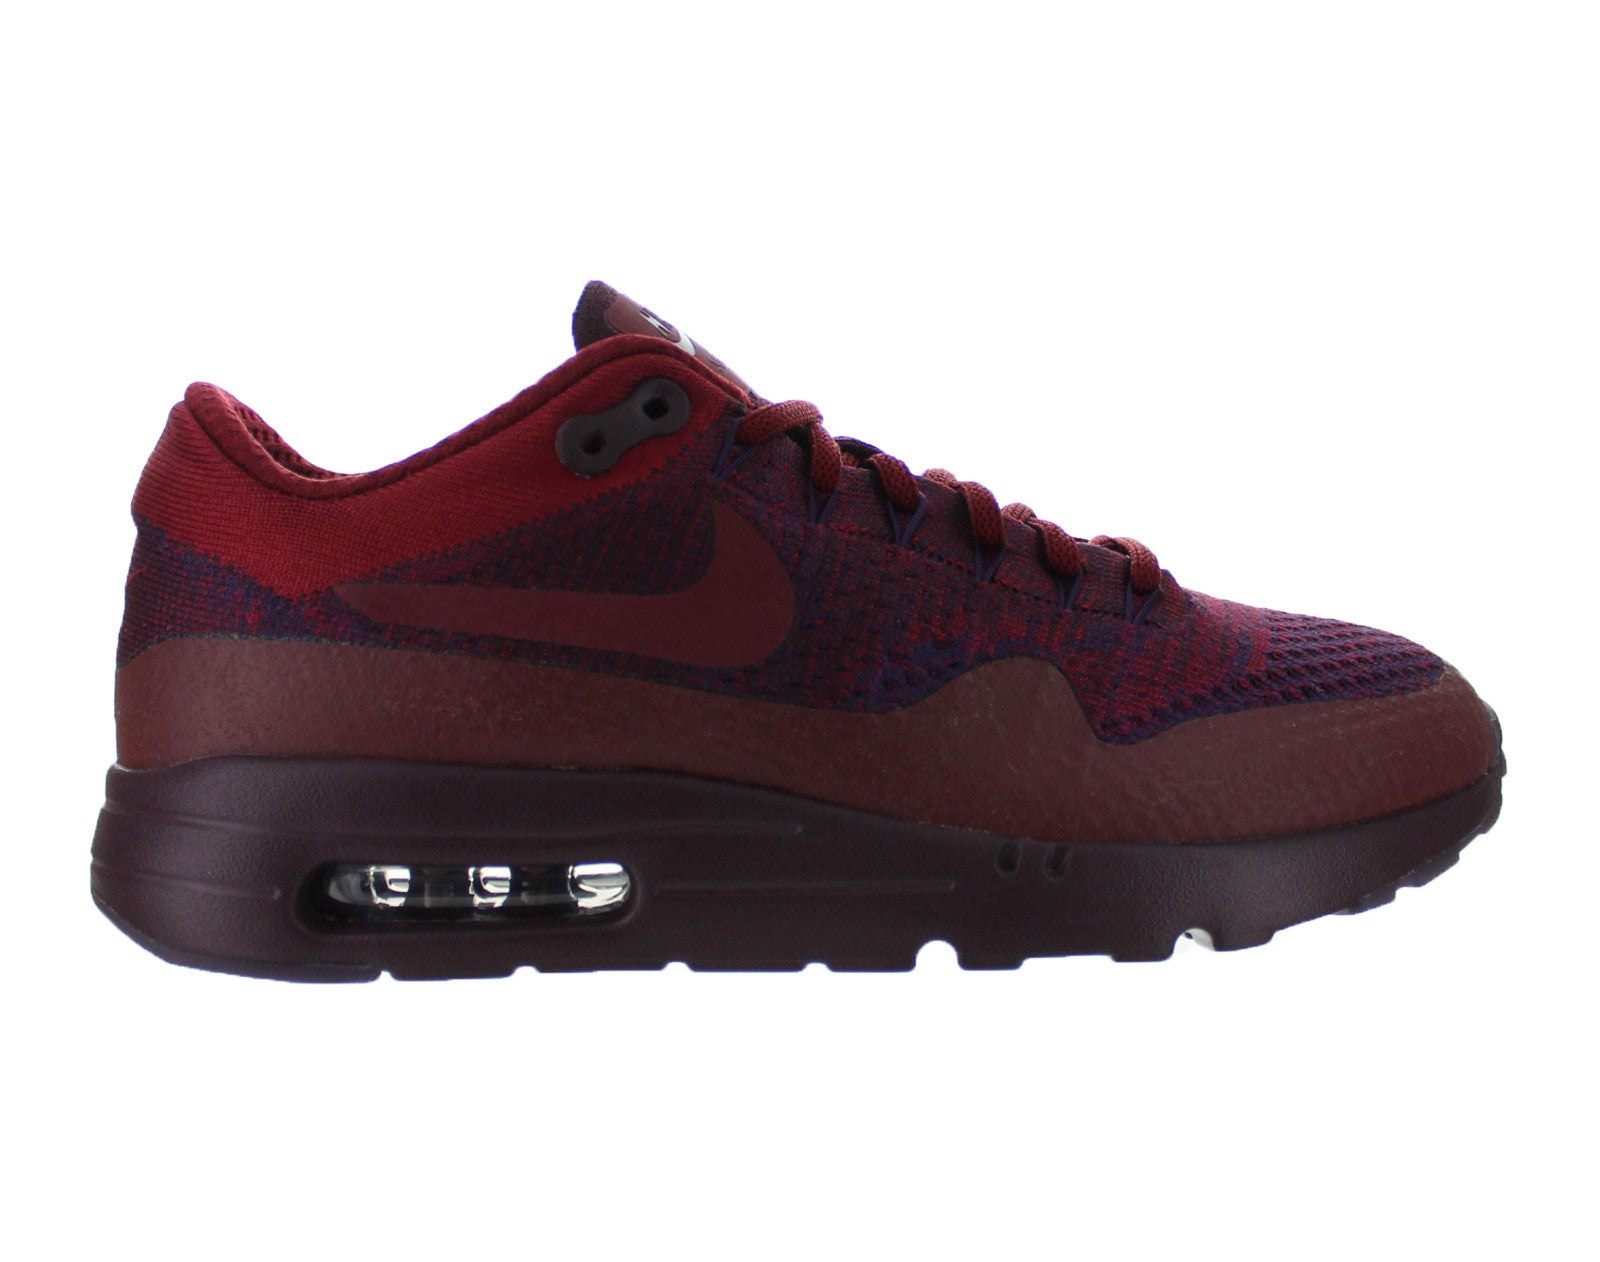 88c784c46aad Mens Nike Air Max 1 Ultra Flyknit Deep Burgundy Grand Purple Team Red  856958-566